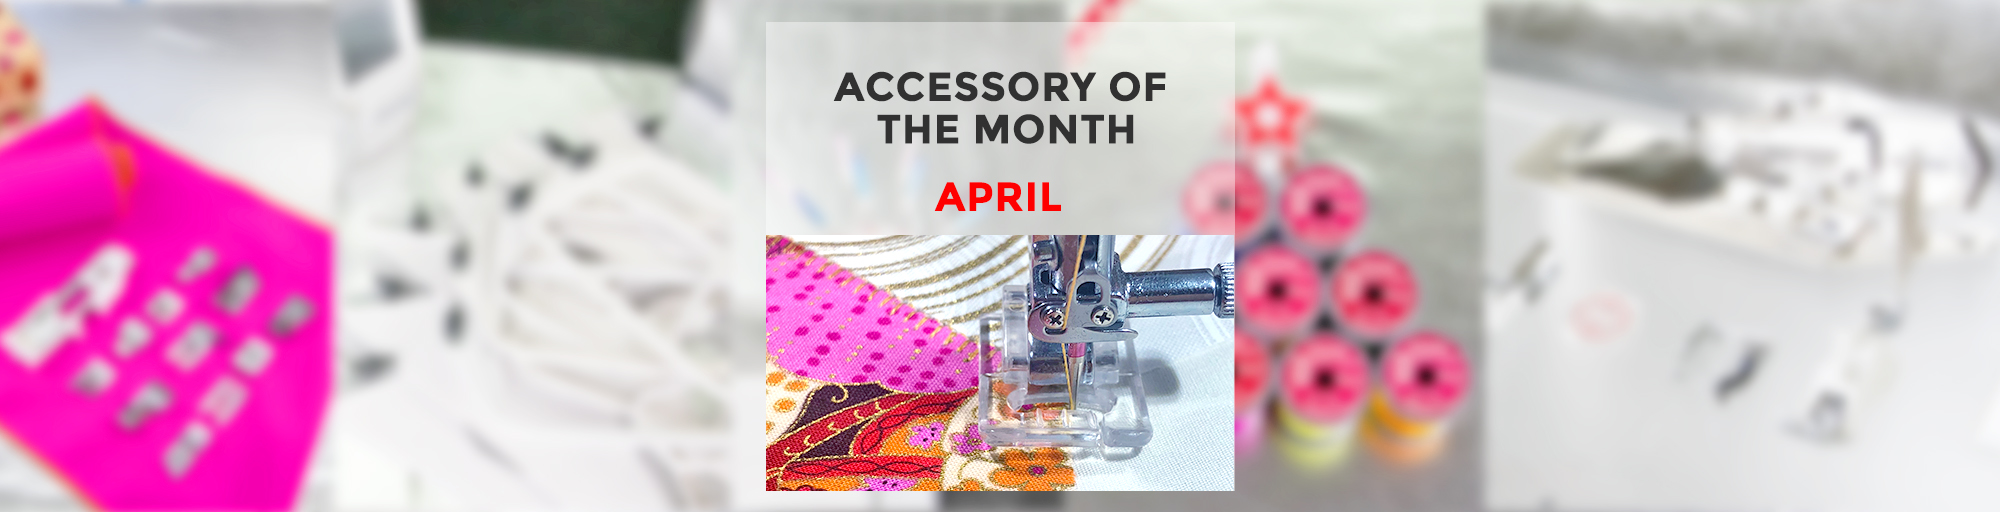 Applique Foot – Accessory Of The Month April 2019